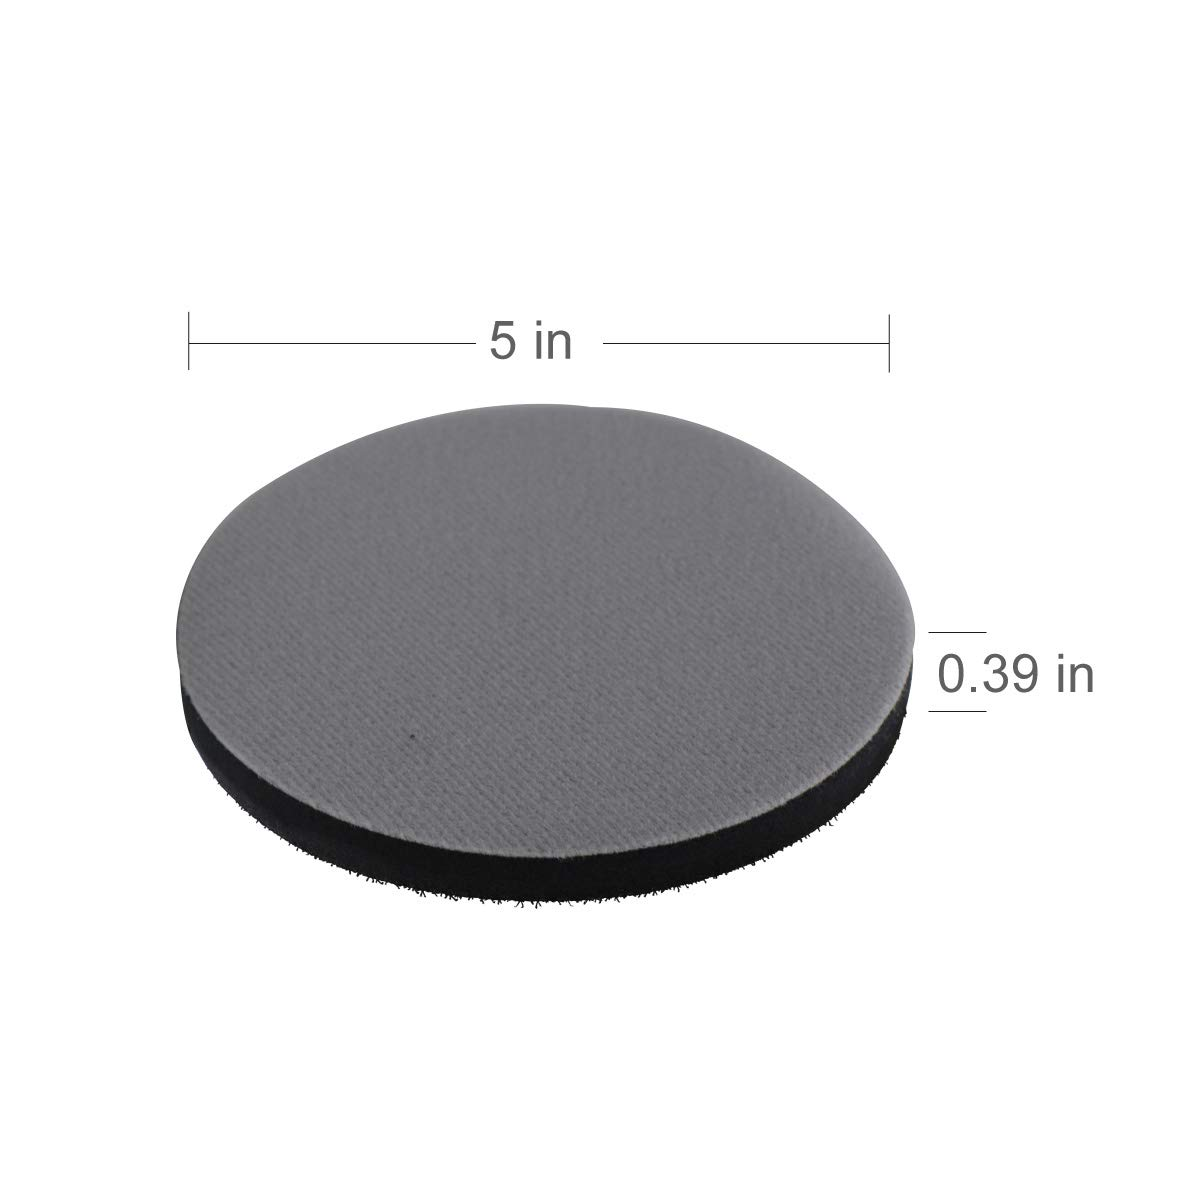 6 Inch Interface Pad 6 Holes Soft Sponge Sanding Disc Backing Pads Hook and Loop Attachment Power Tools Accessories 150mm by VIBRATITE